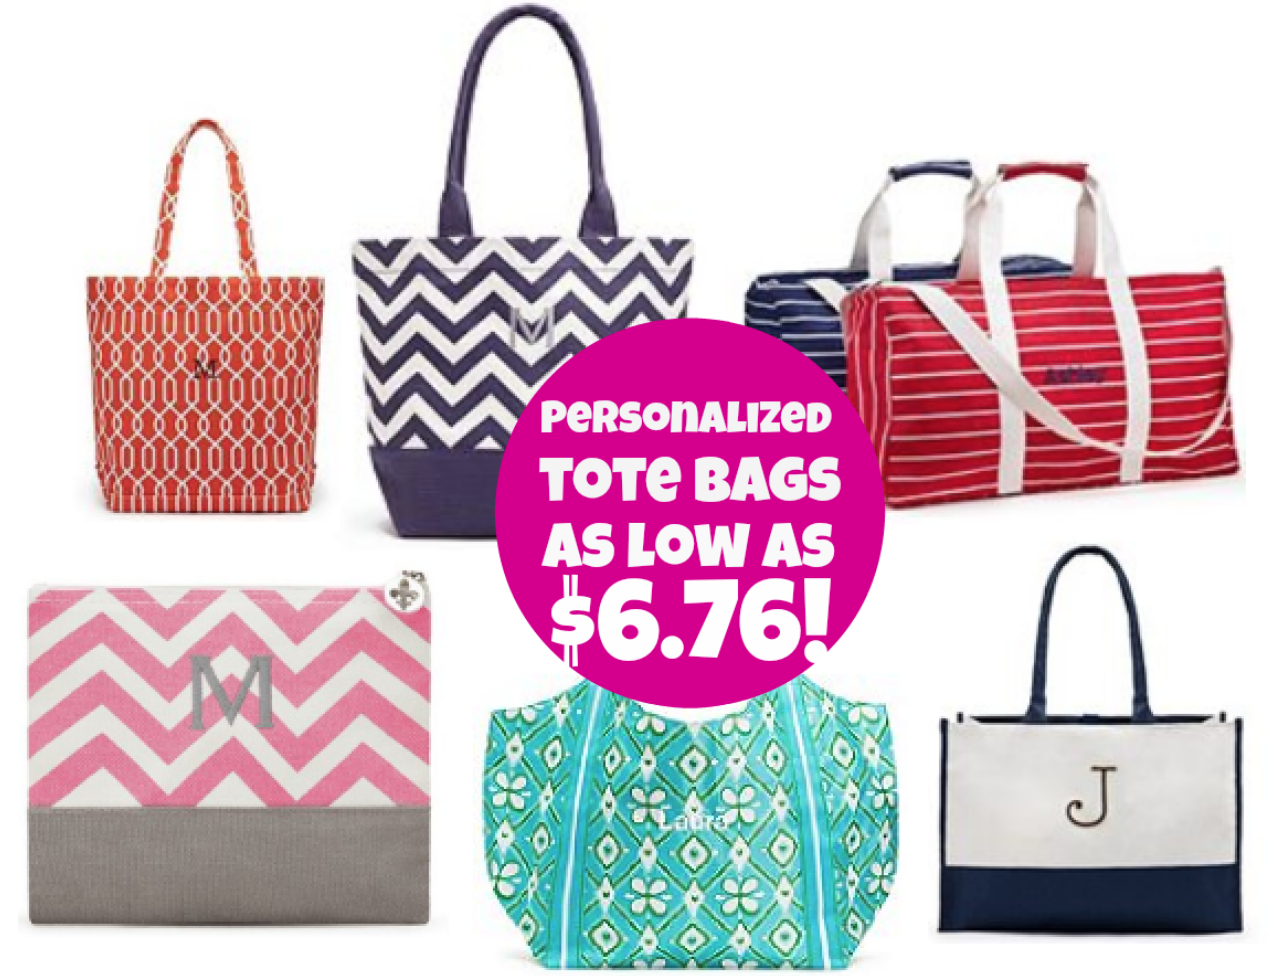 http://www.thebinderladies.com/2014/10/the-knot-shop-personalized-tote-bags-as.html#.VEqsk0vdtbw